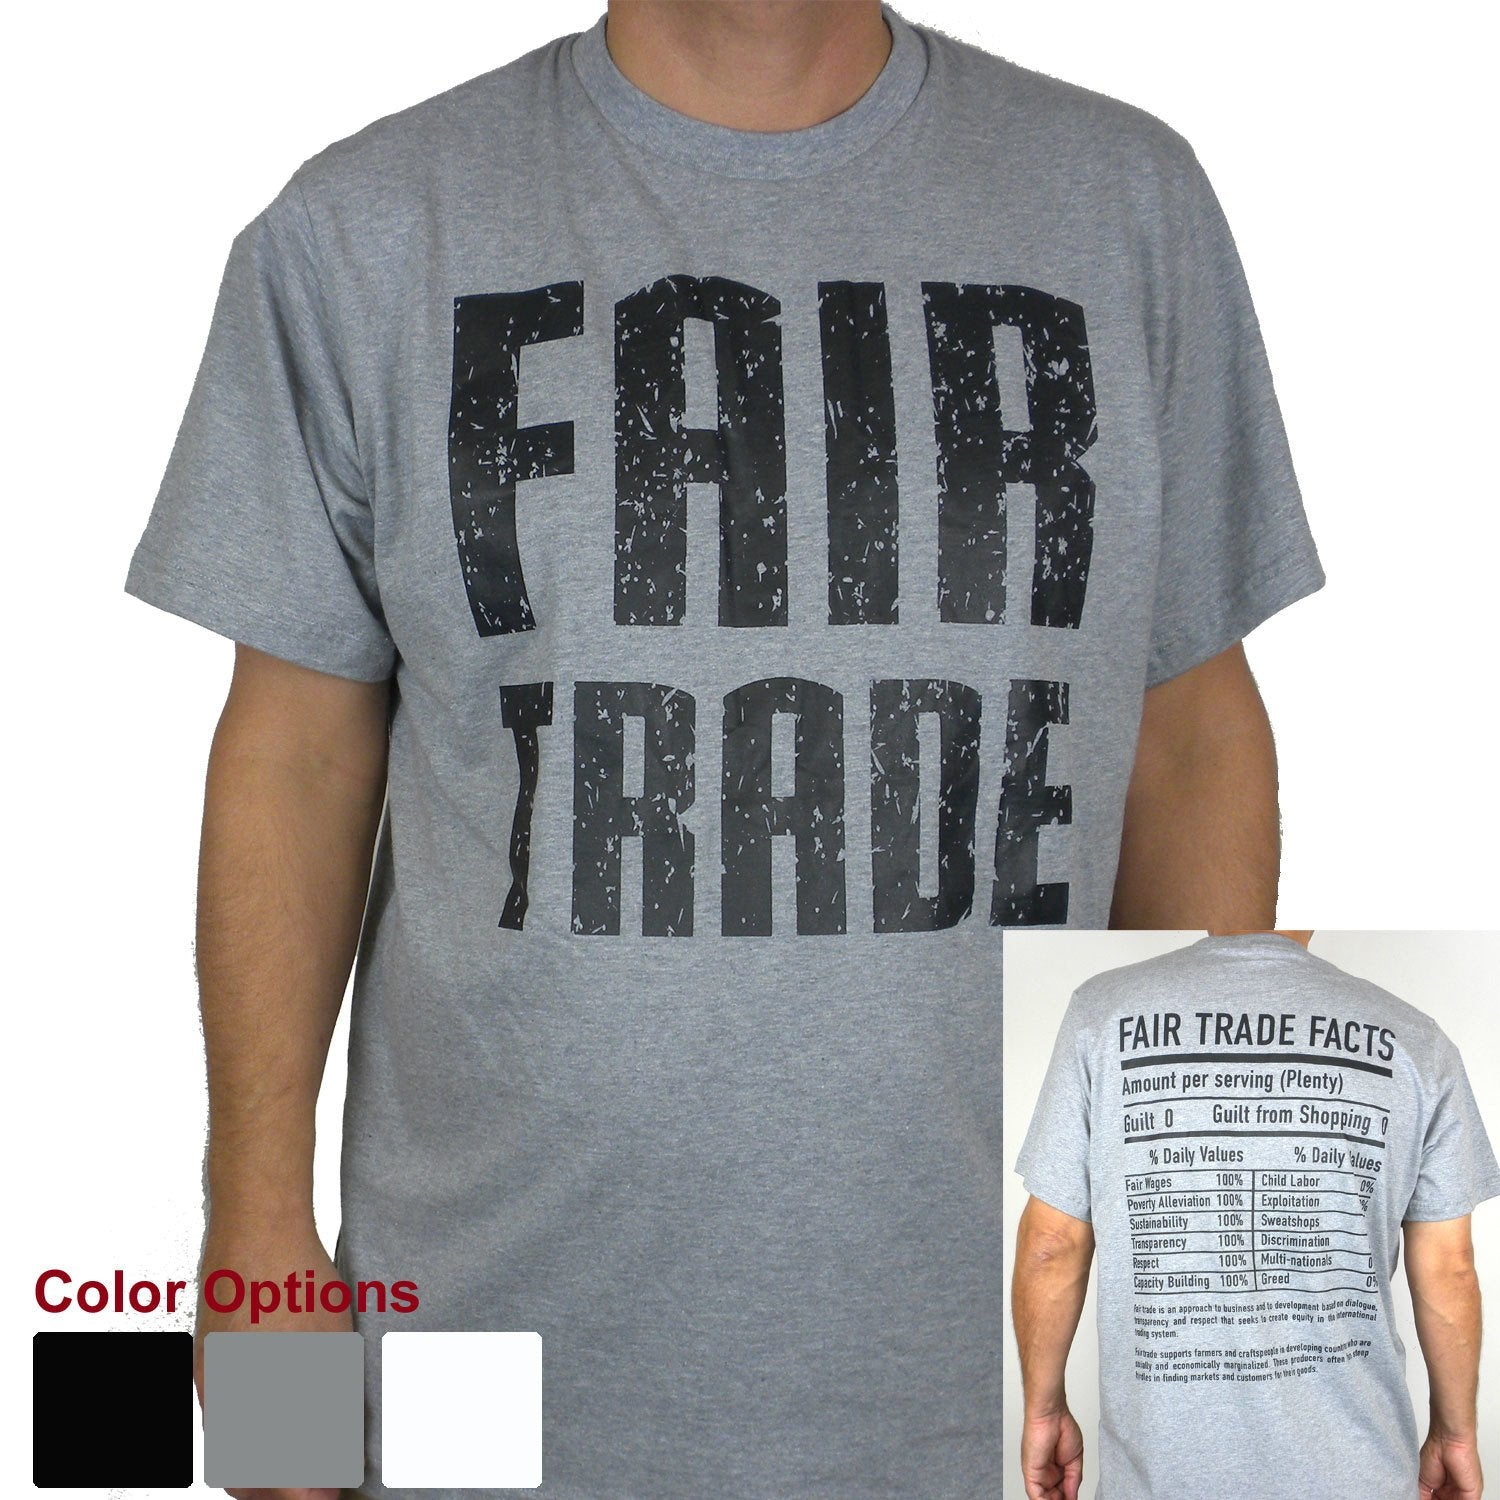 Gray Tee Shirt Unisex FT Front - FT Facts on Back - Small